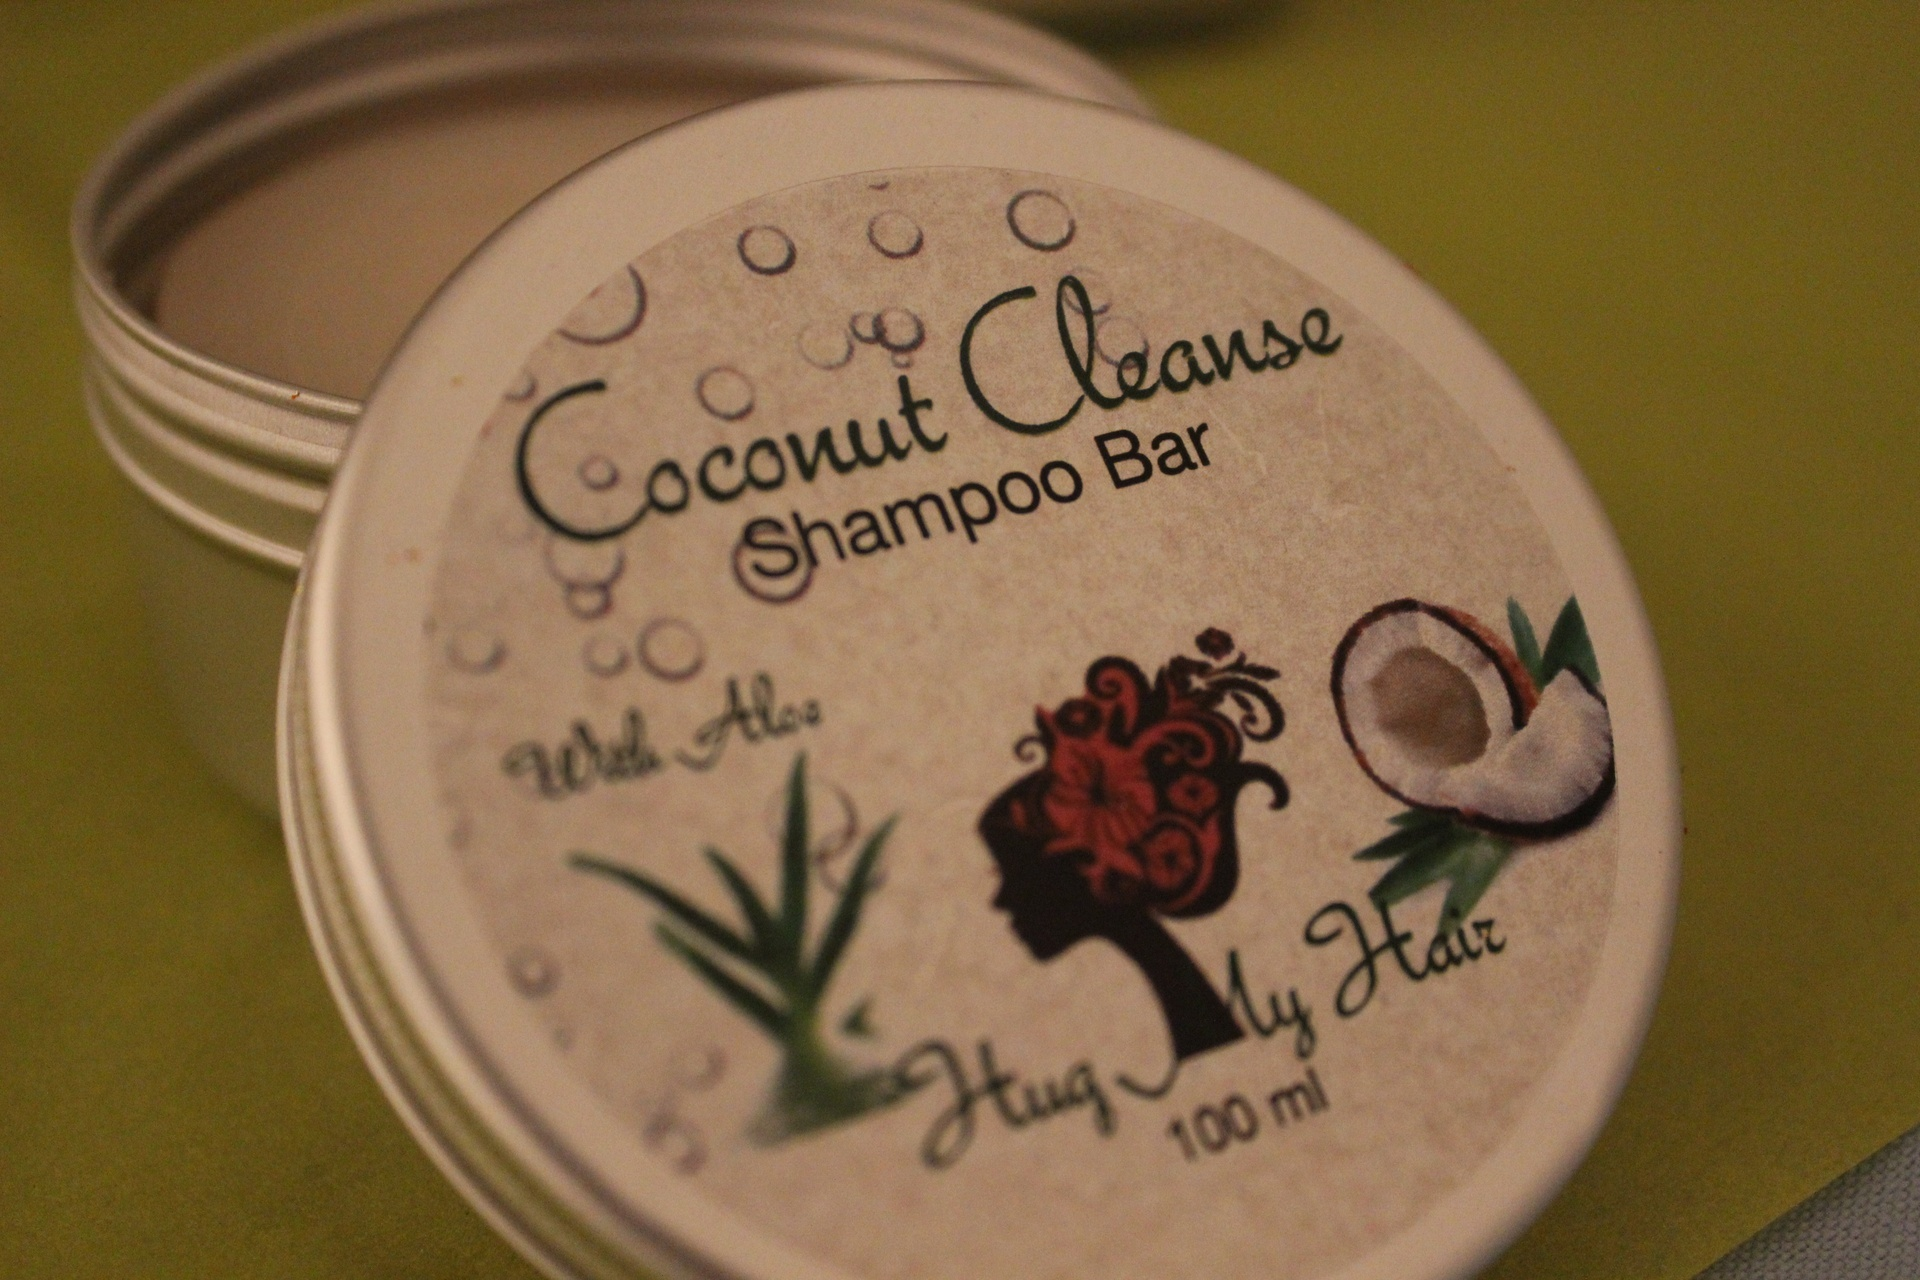 Hug My Hair Coconut Cleanse Shampoo Bar